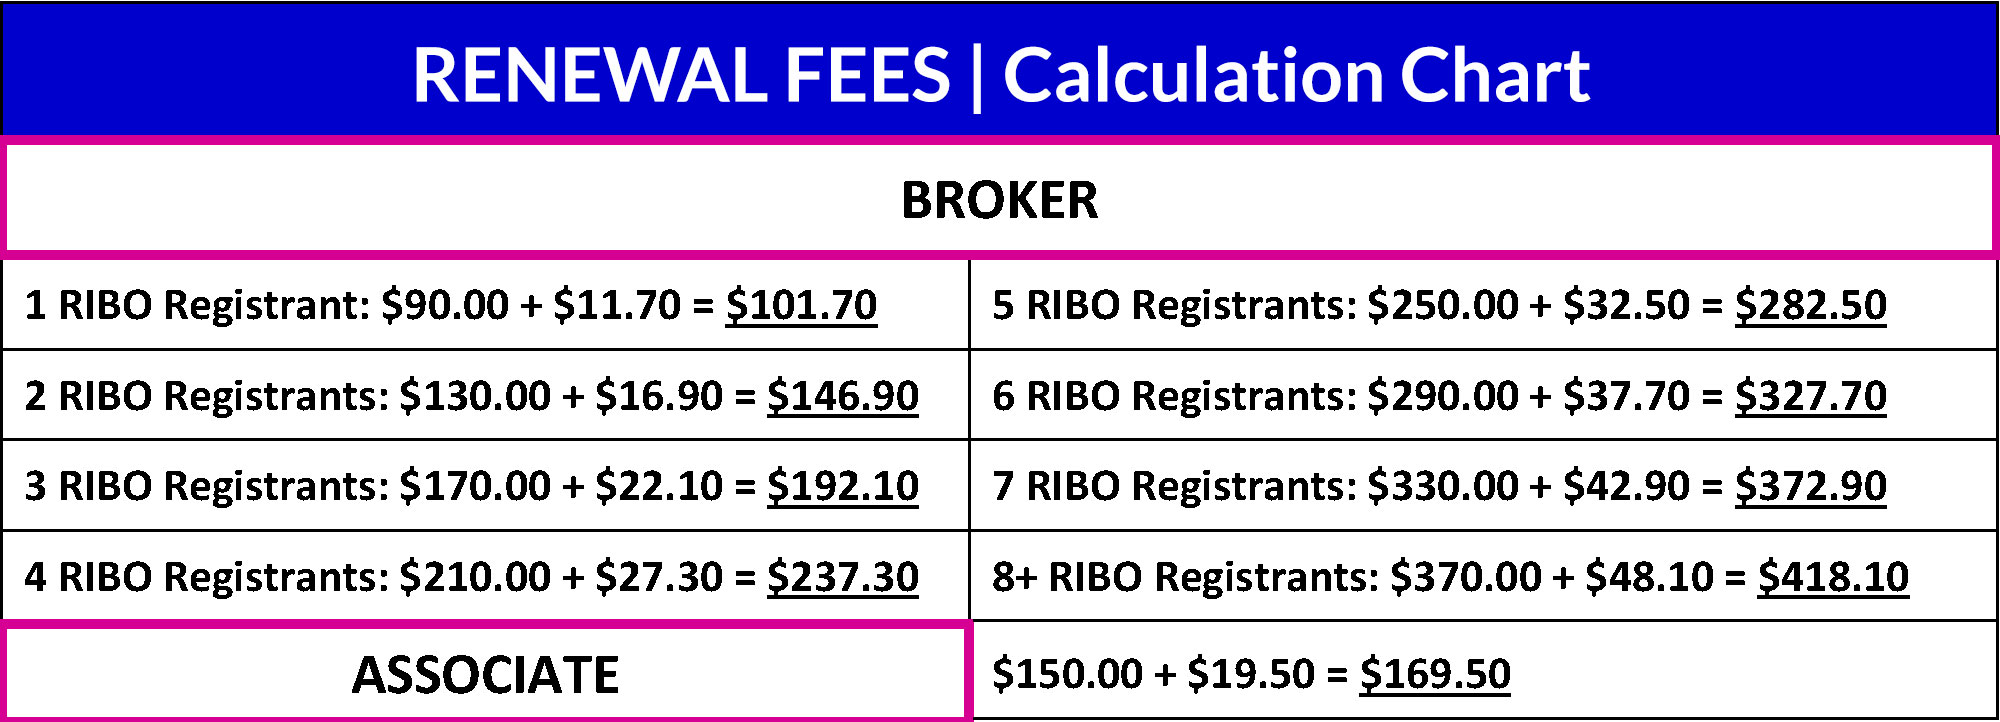 IBAH Member Renewal Fees